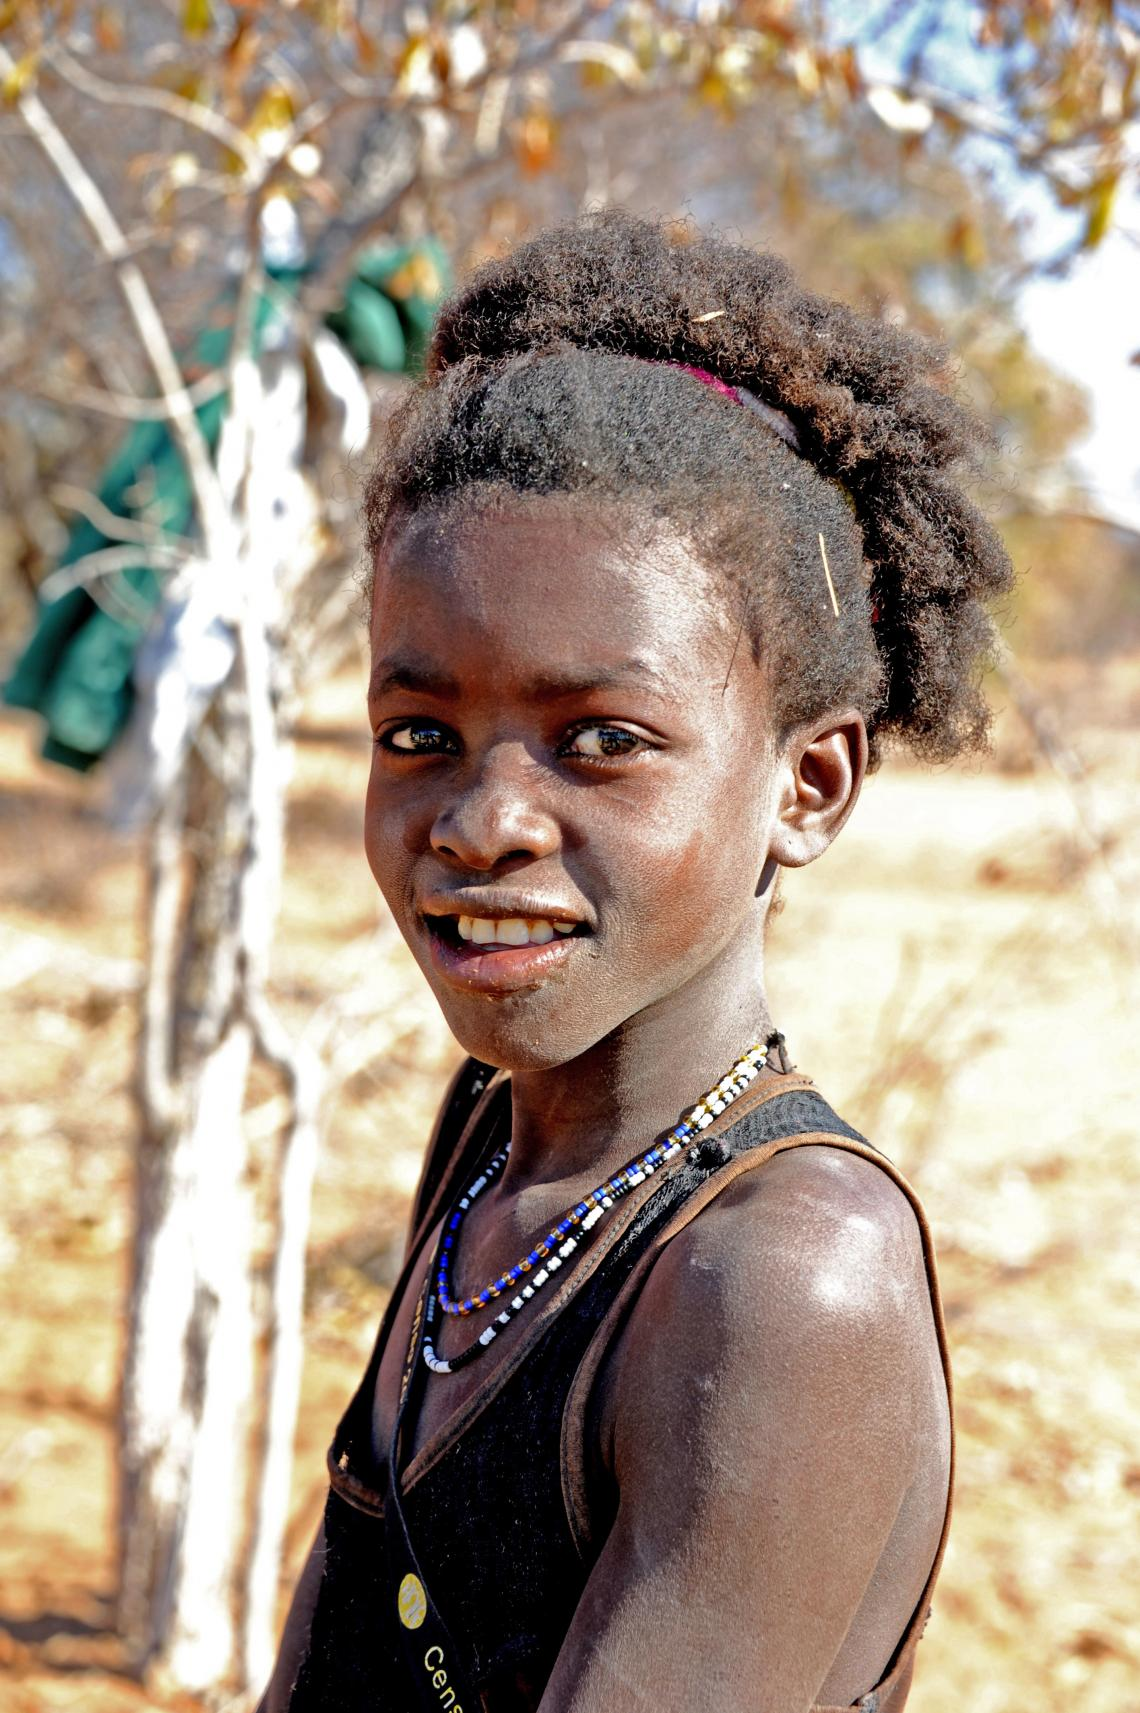 12-year-old Marta Ndimaoshitya and her six other siblings share and alternate the task of accompanying their father on the 1-hour-long daily to fetch water in Cuene province, Southern Angola.